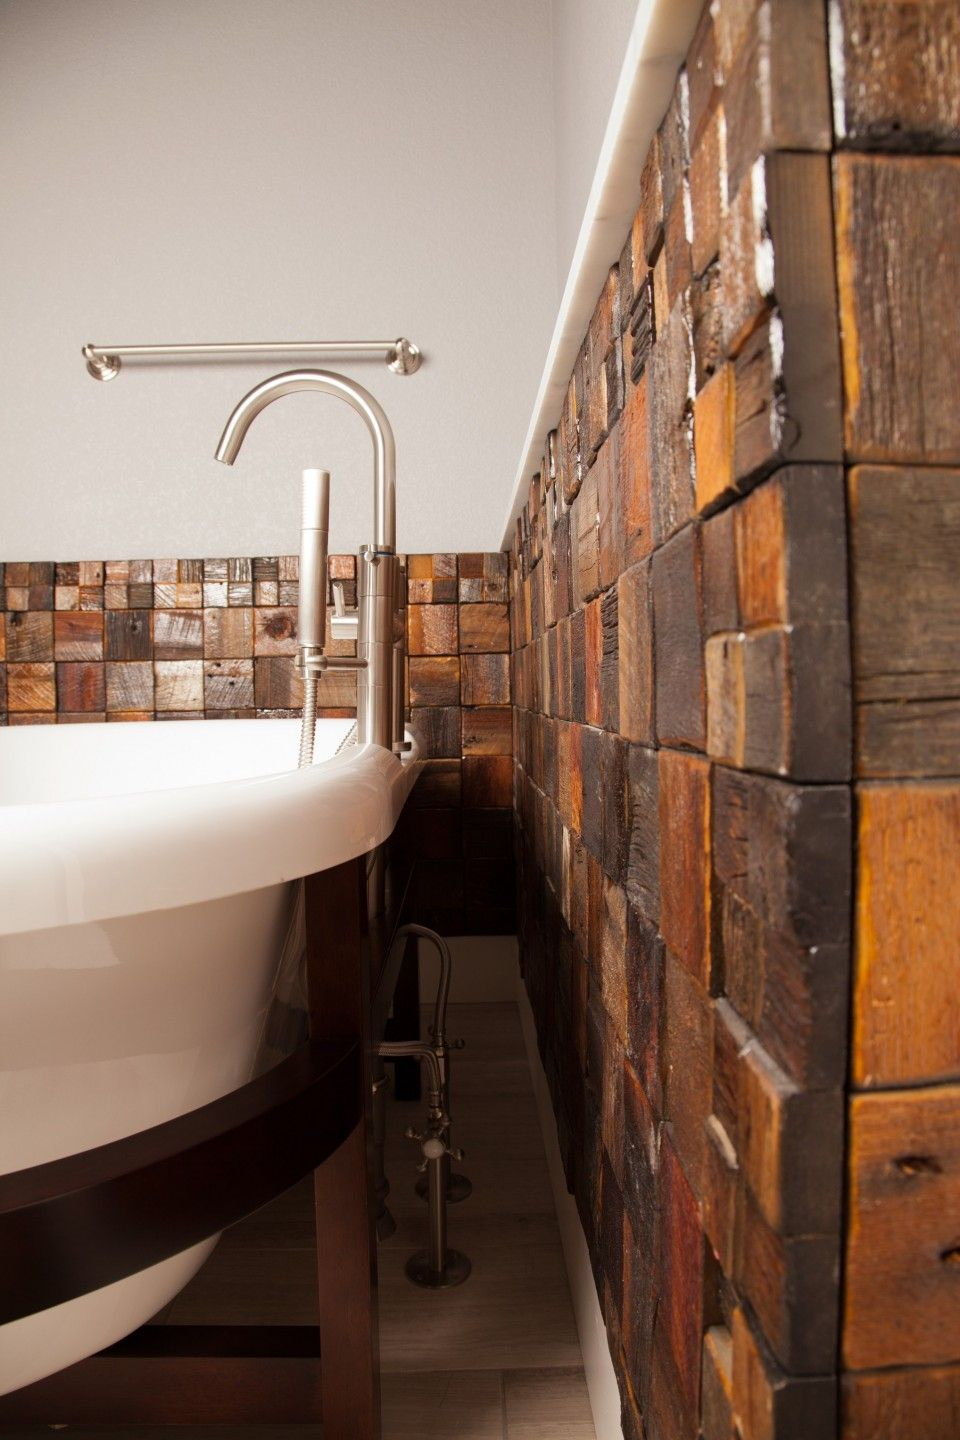 Reclaimed Barnwood Used As A Backsplash For A Free Standing Tub Reclaimed Wood Wall Decor Wood Wall Decor Wood Wall Tiles